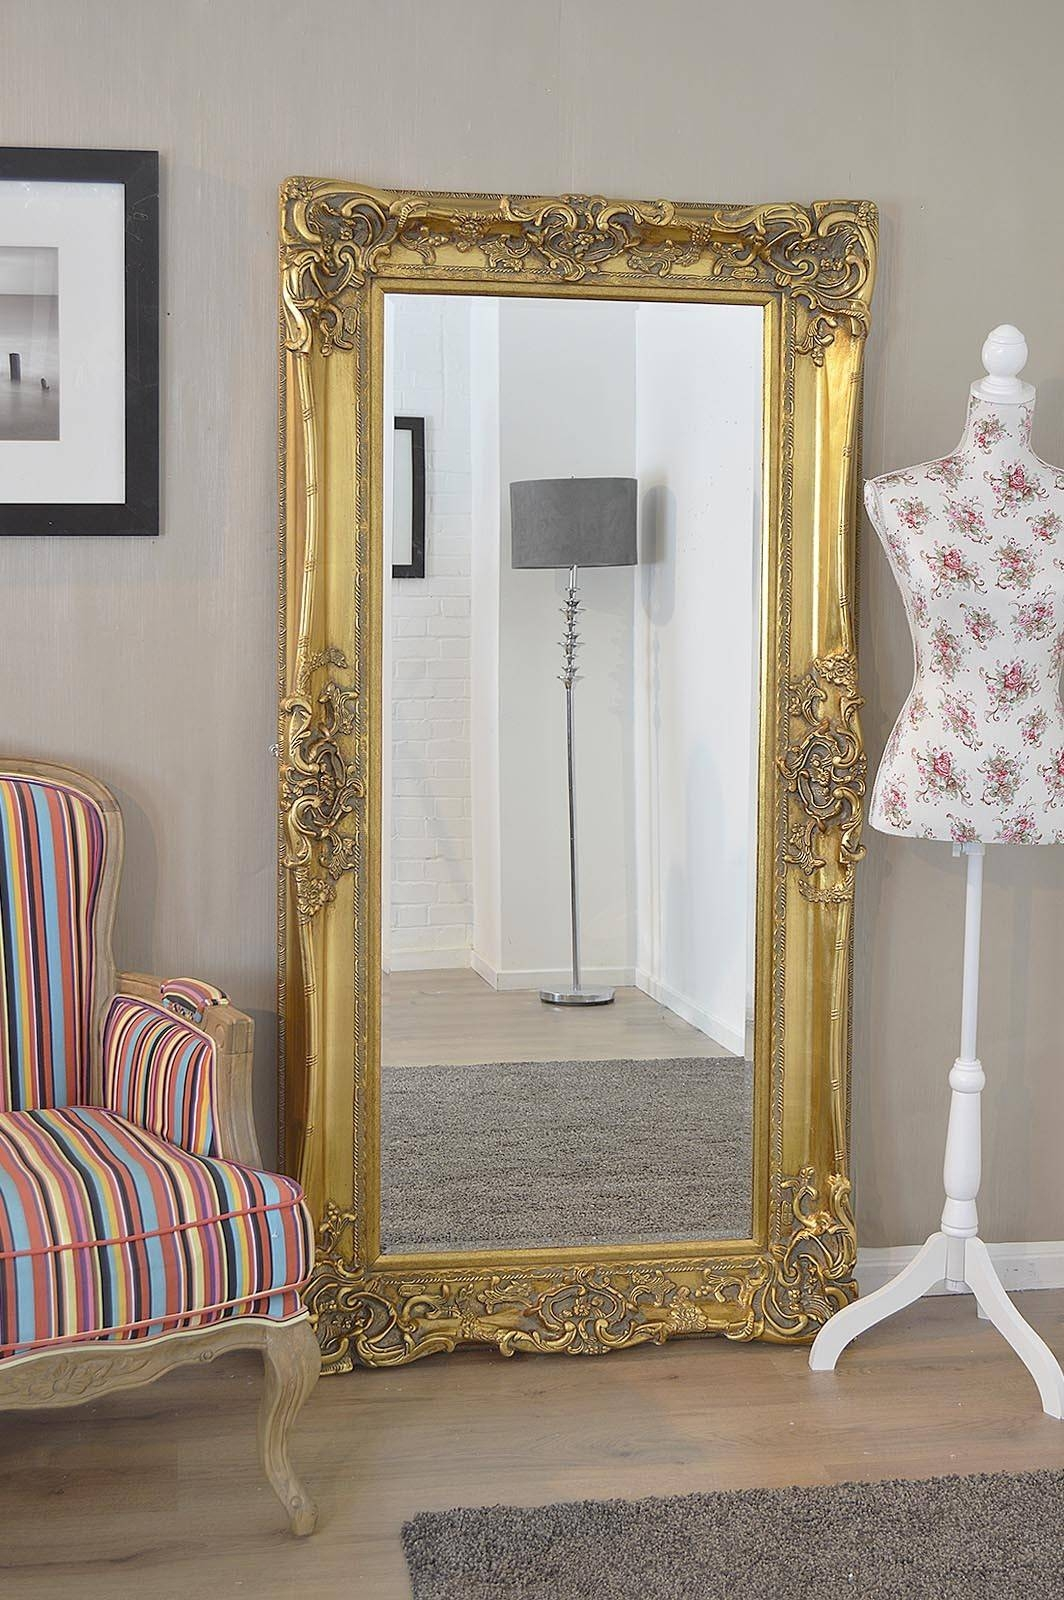 Fabulous Inexpensive Mirrors With Vintage Ornate Mirror Likewise intended for Antique Ornate Mirrors (Image 13 of 25)